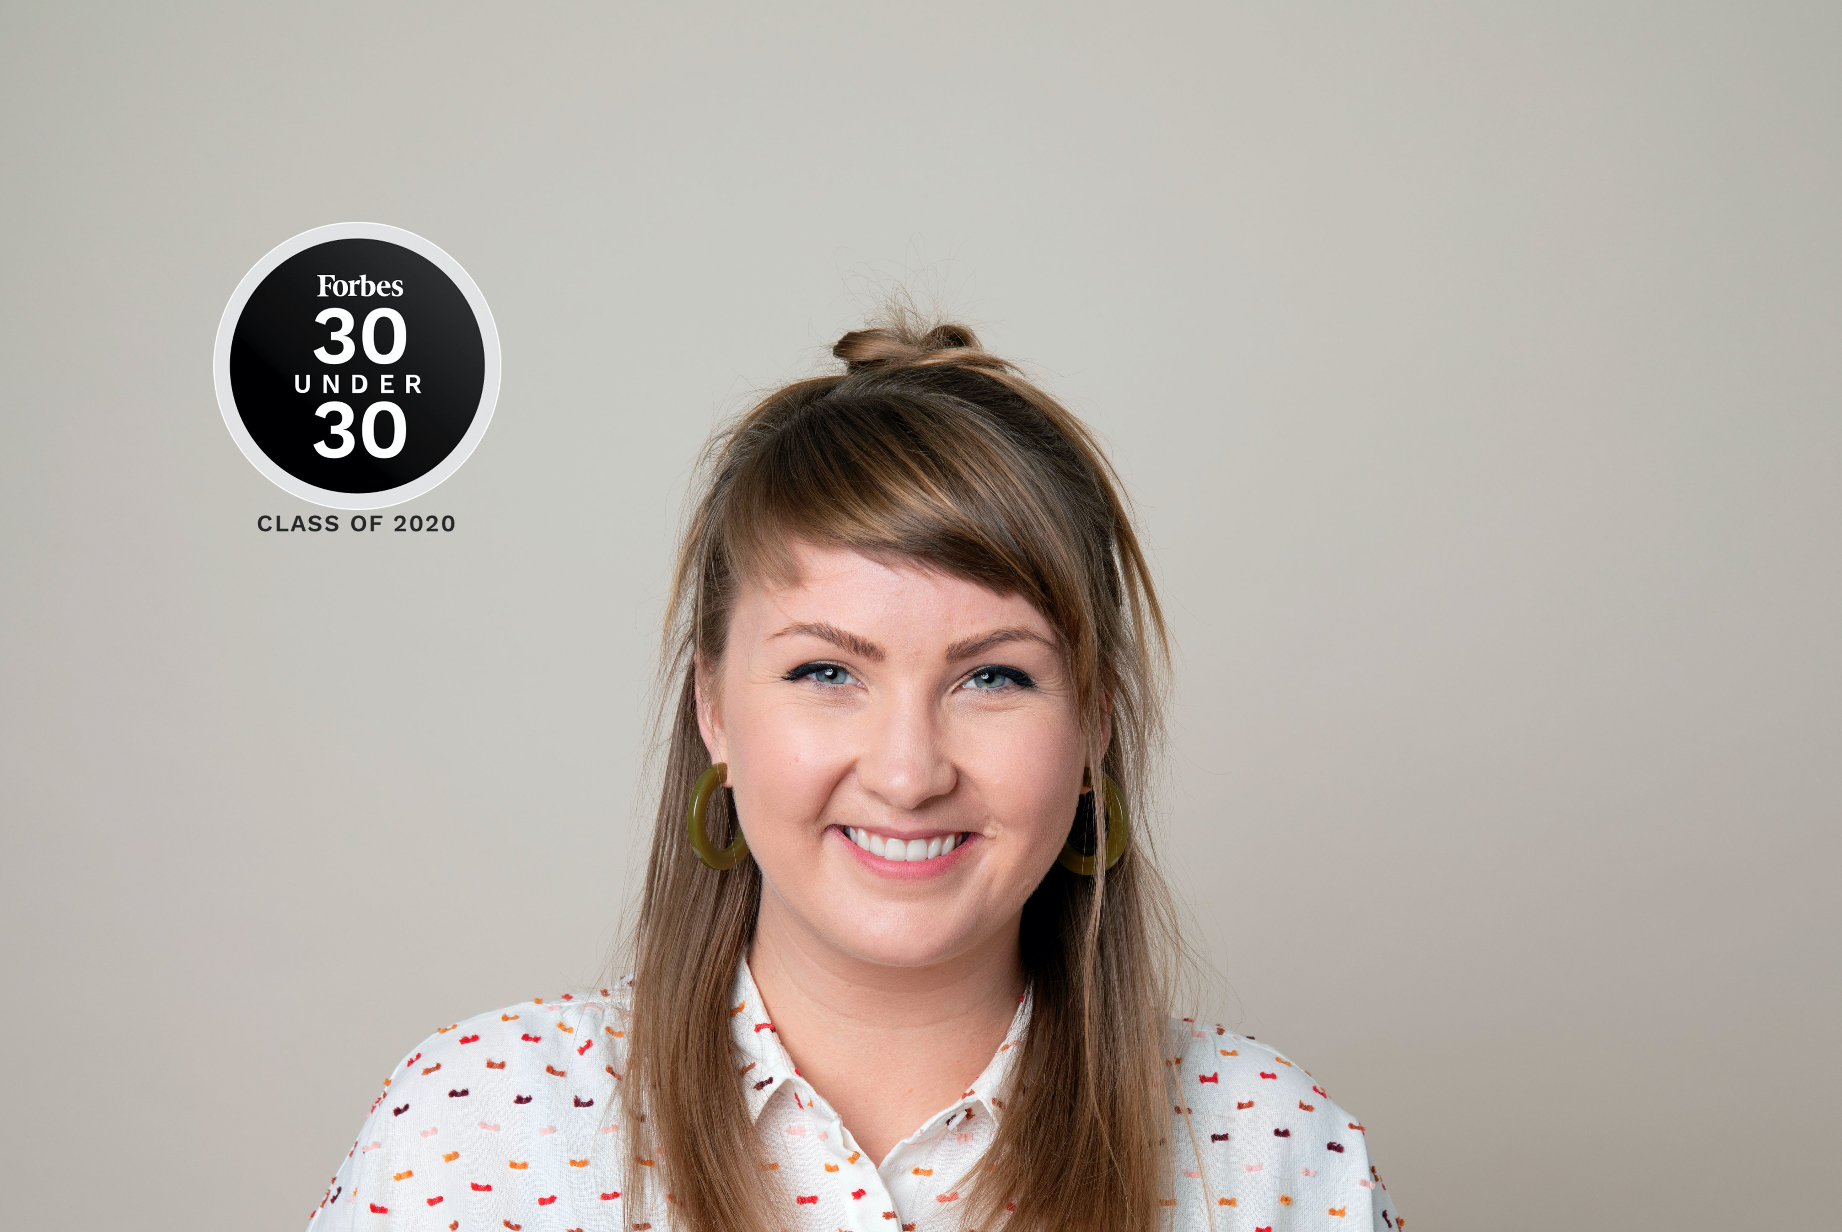 Hayley Anderson Forbes 30 Under 30